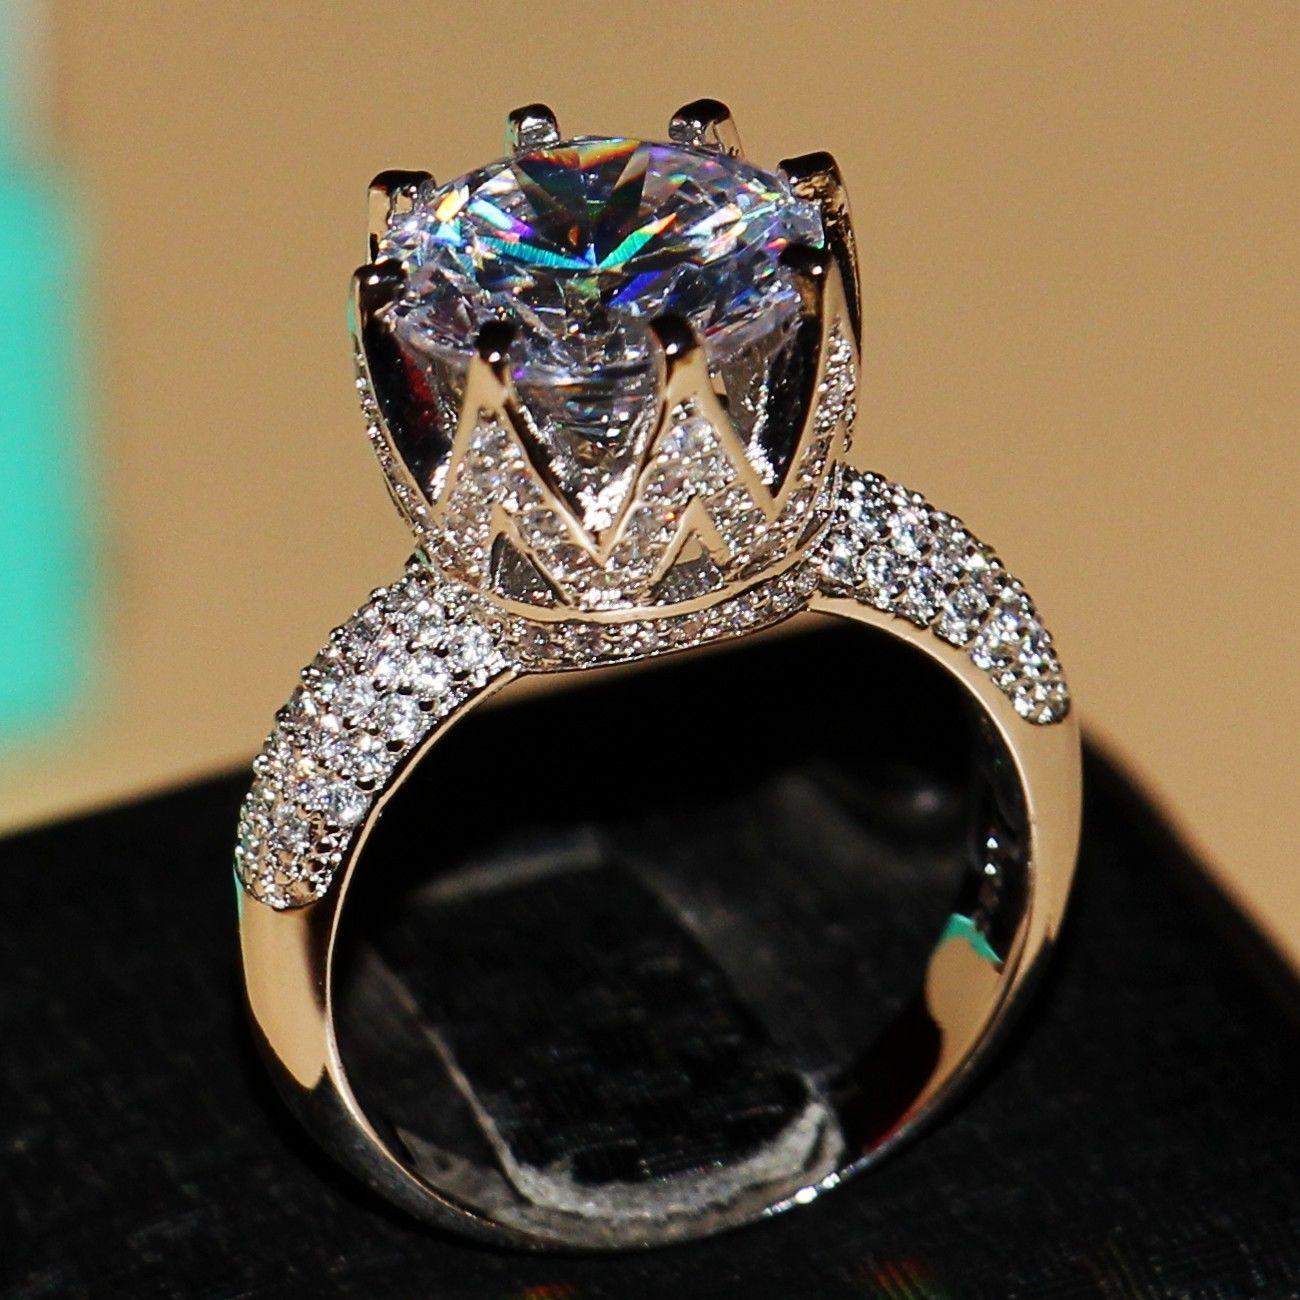 Average Cost Of A Crown >> 2017 Victoria Wieck 8ct Big Stone Solitaire 925 Sterling Silver Filled Topaz Simulated Diamond ...